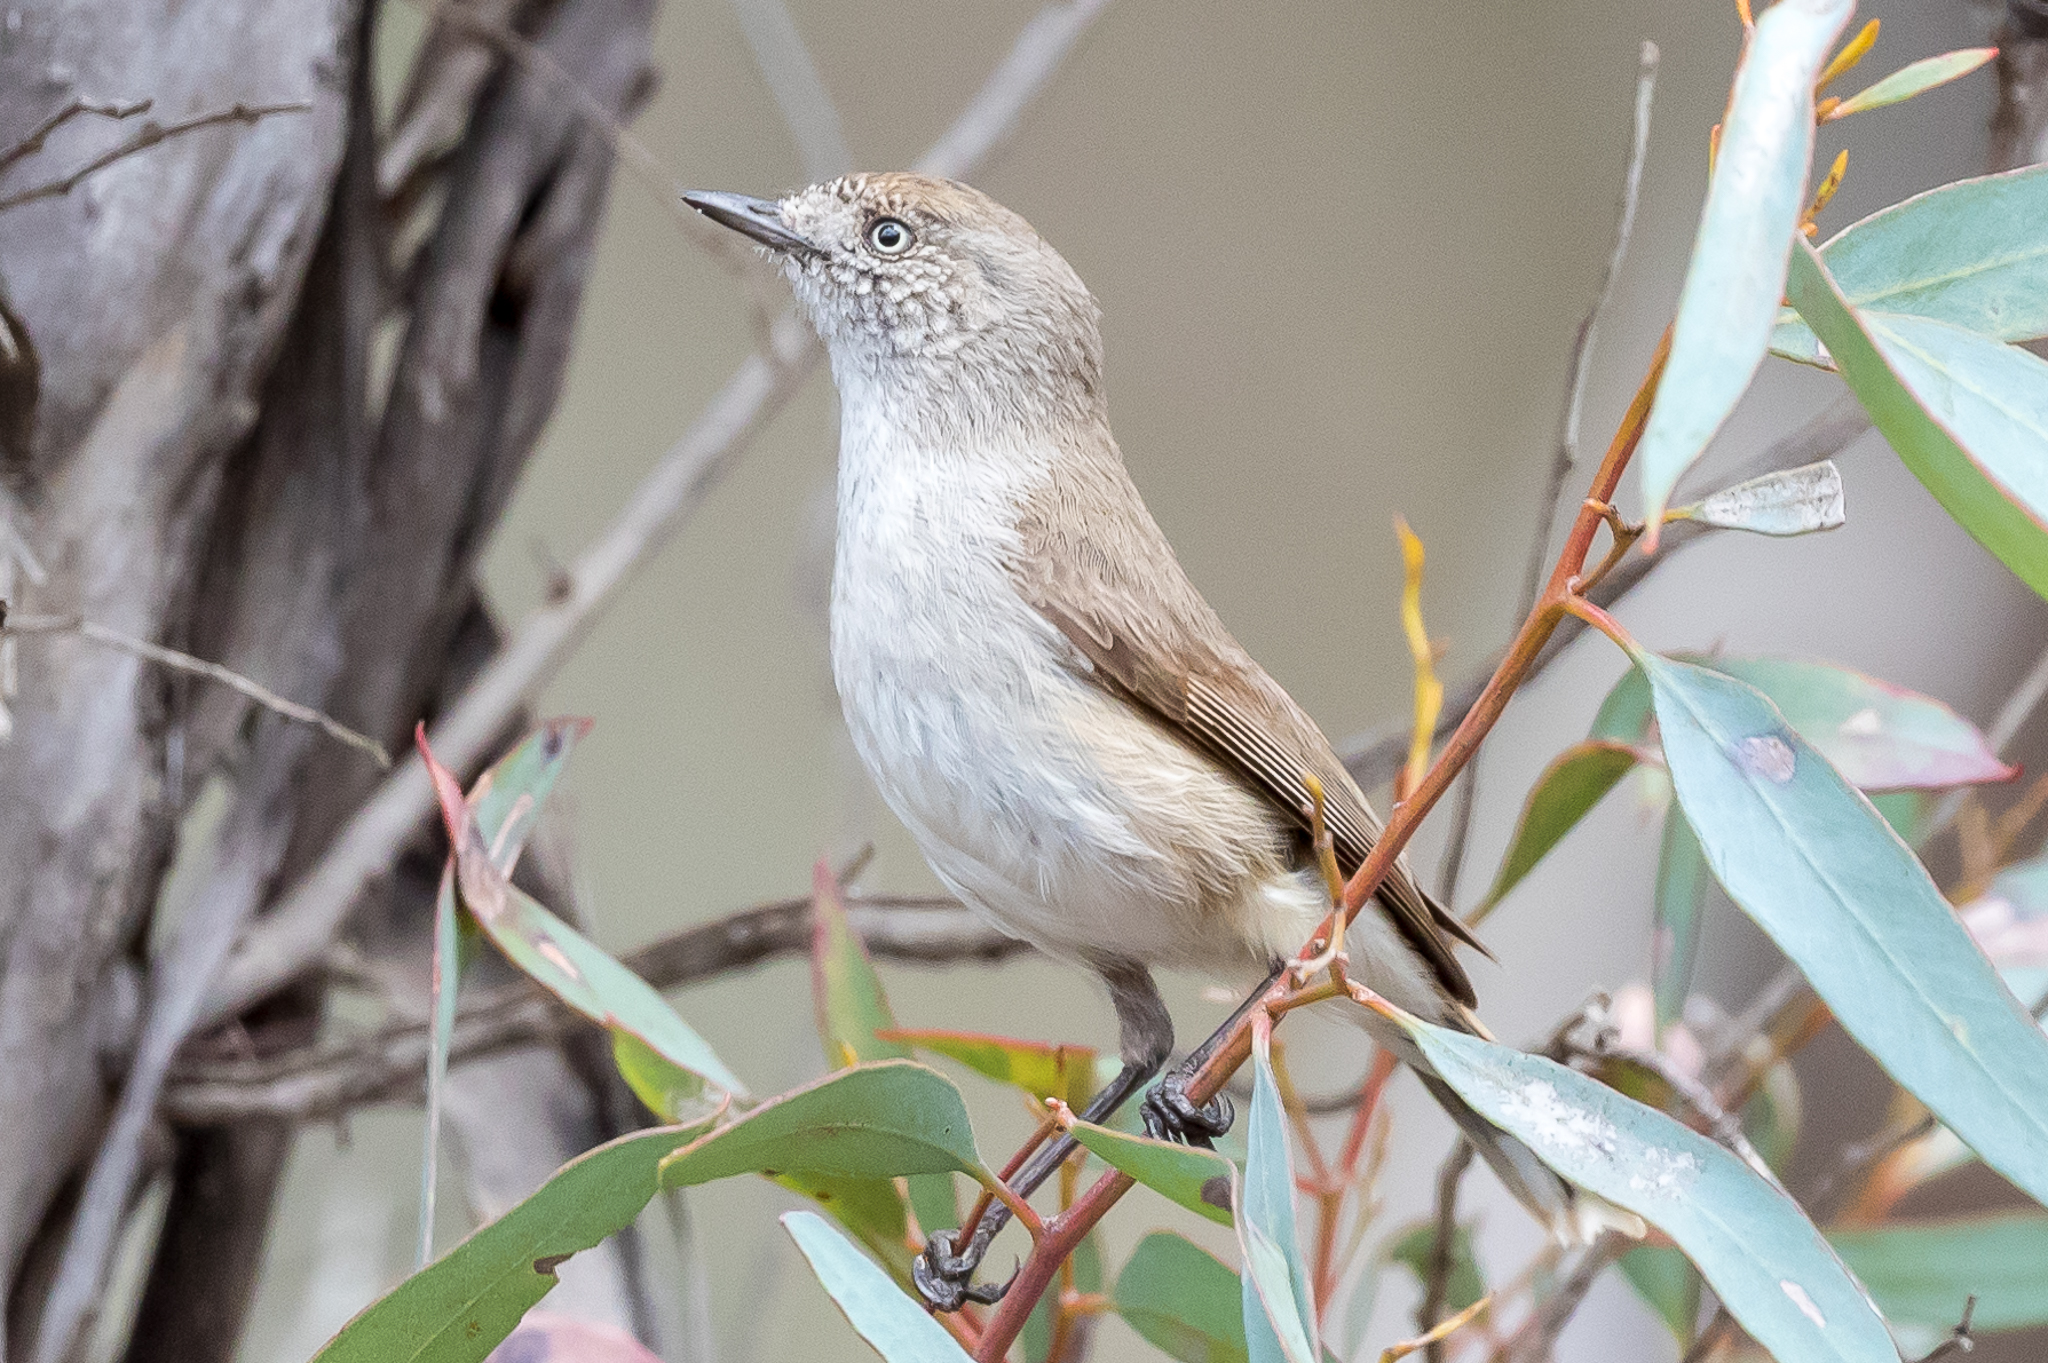 Chestnut-rumped Thornbills frequent semi-arid woodland, mulga and acacia scrubland, feed on insects. They feed from the low branches of small trees and shrubs, sometimes feeding on the ground.